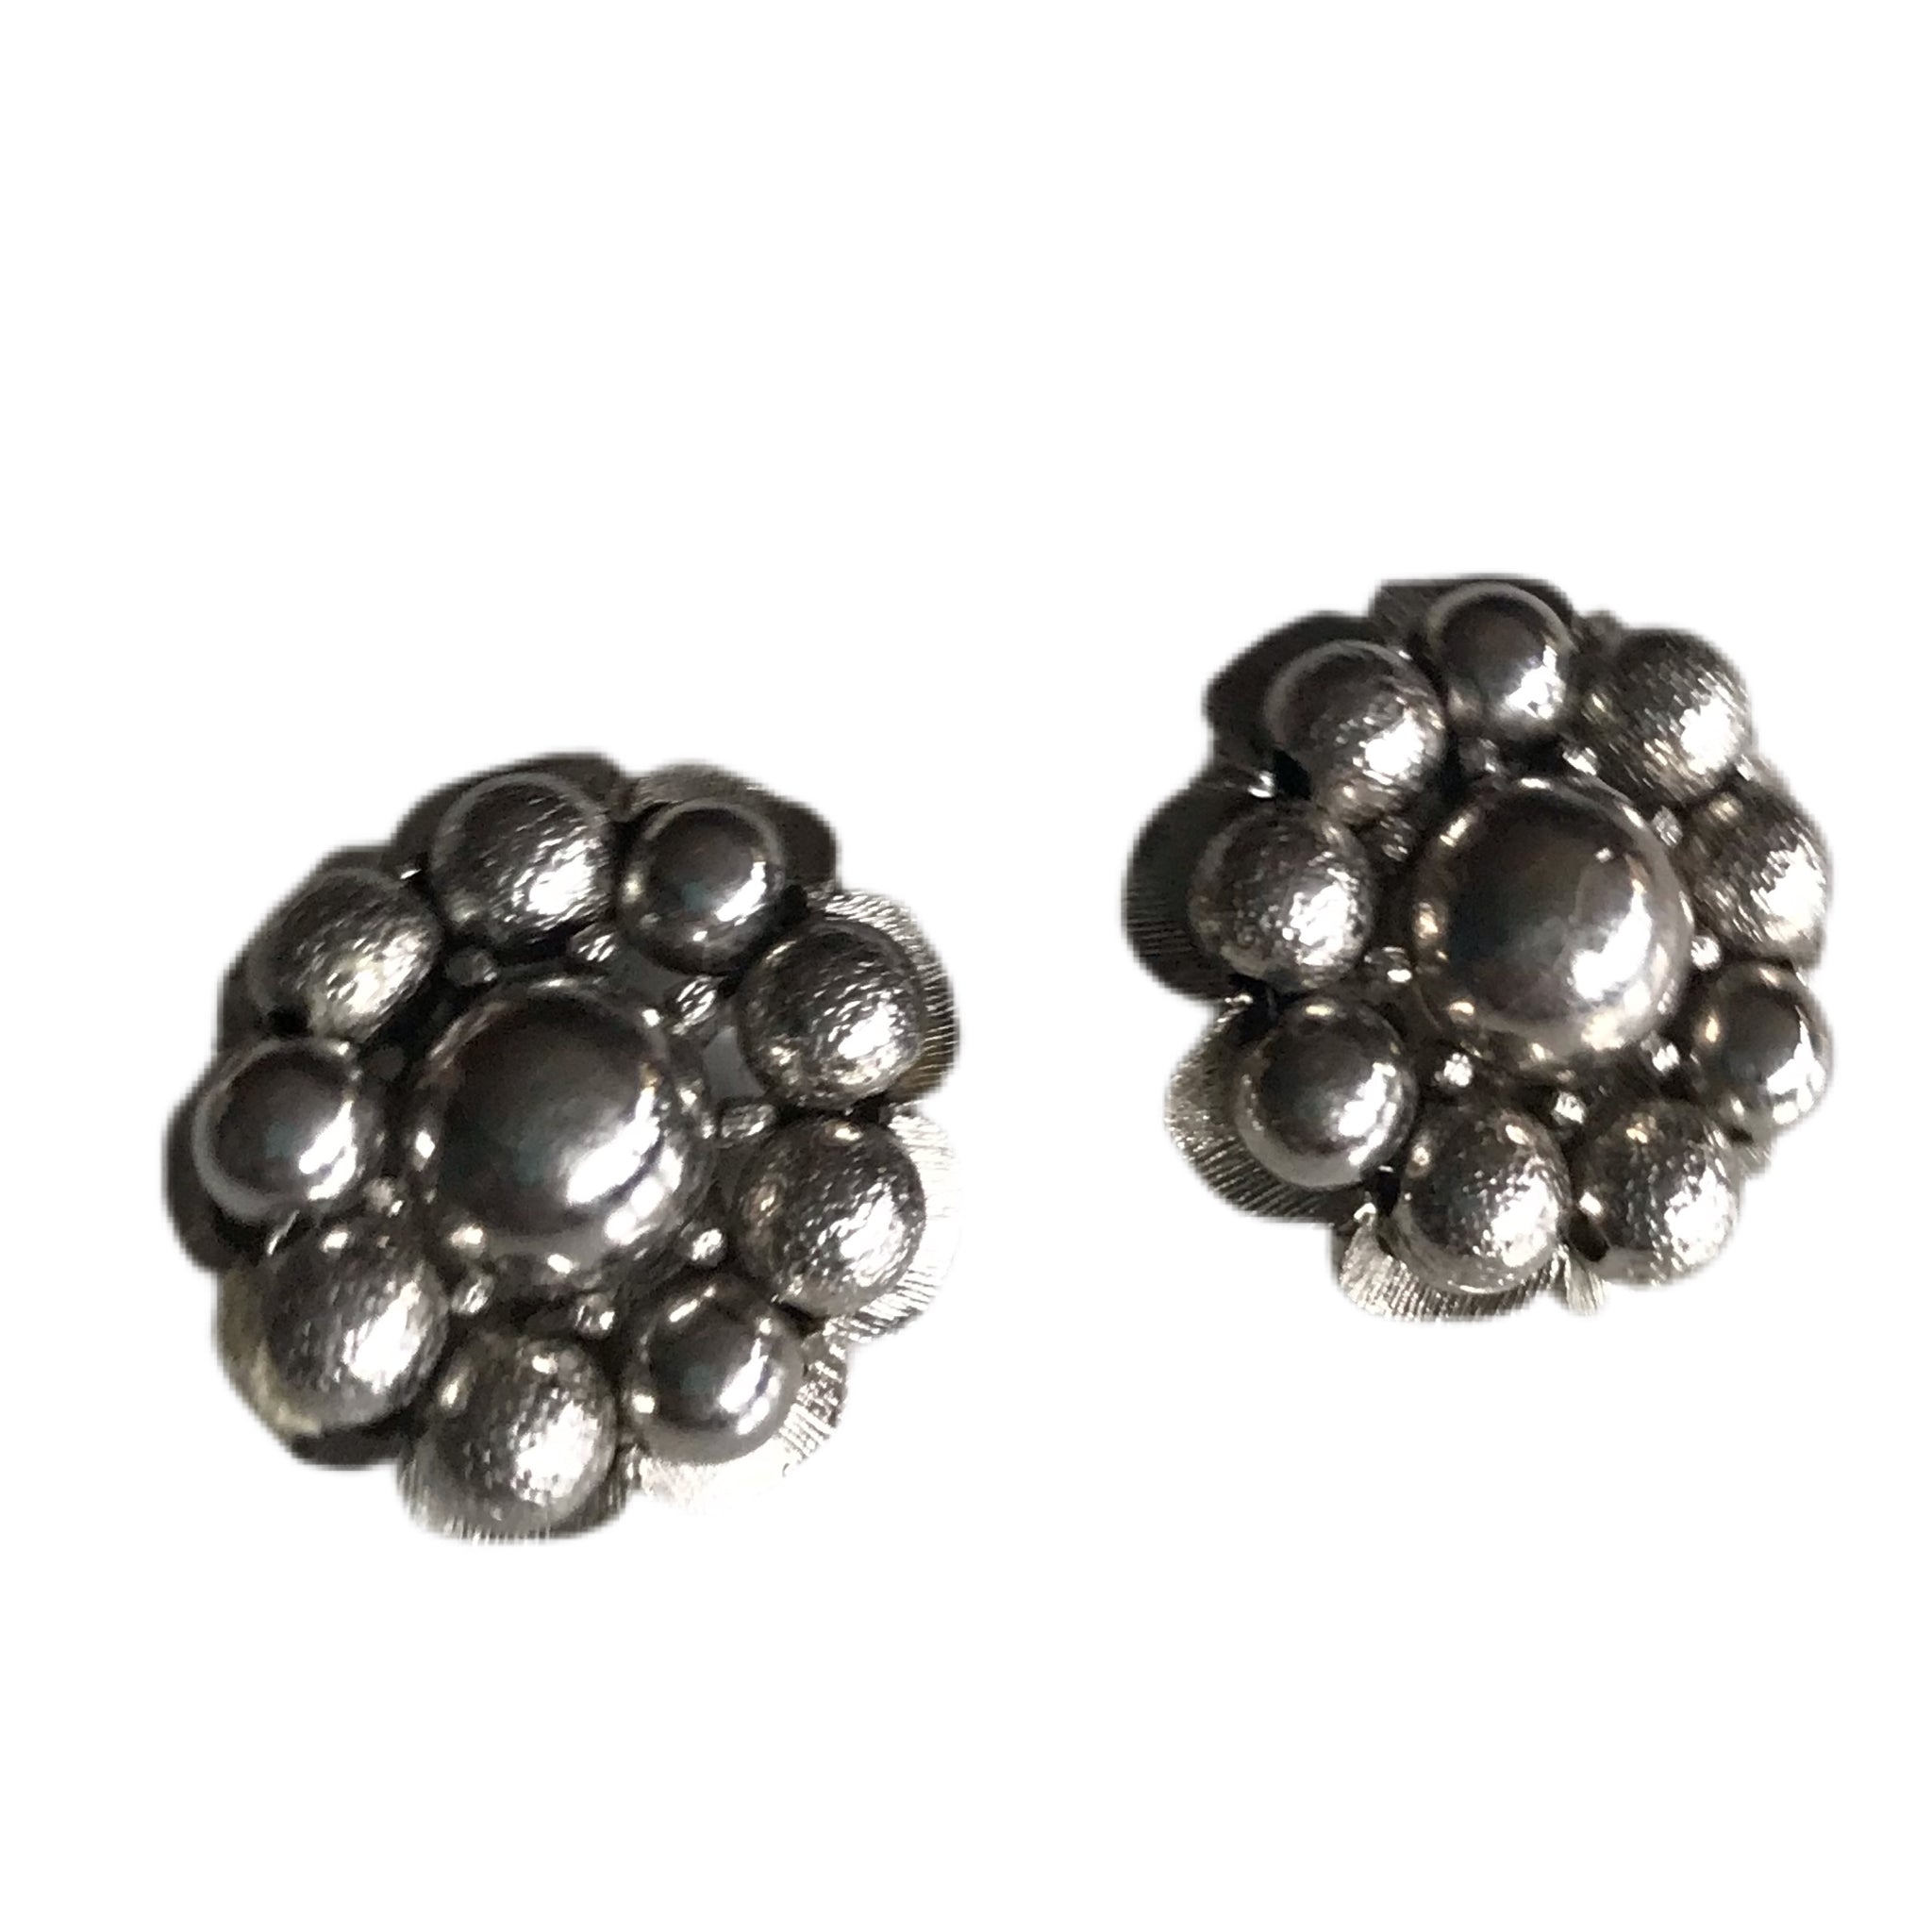 Silver Tone Metal Ball Cluster Clip Earrings circa 1940s